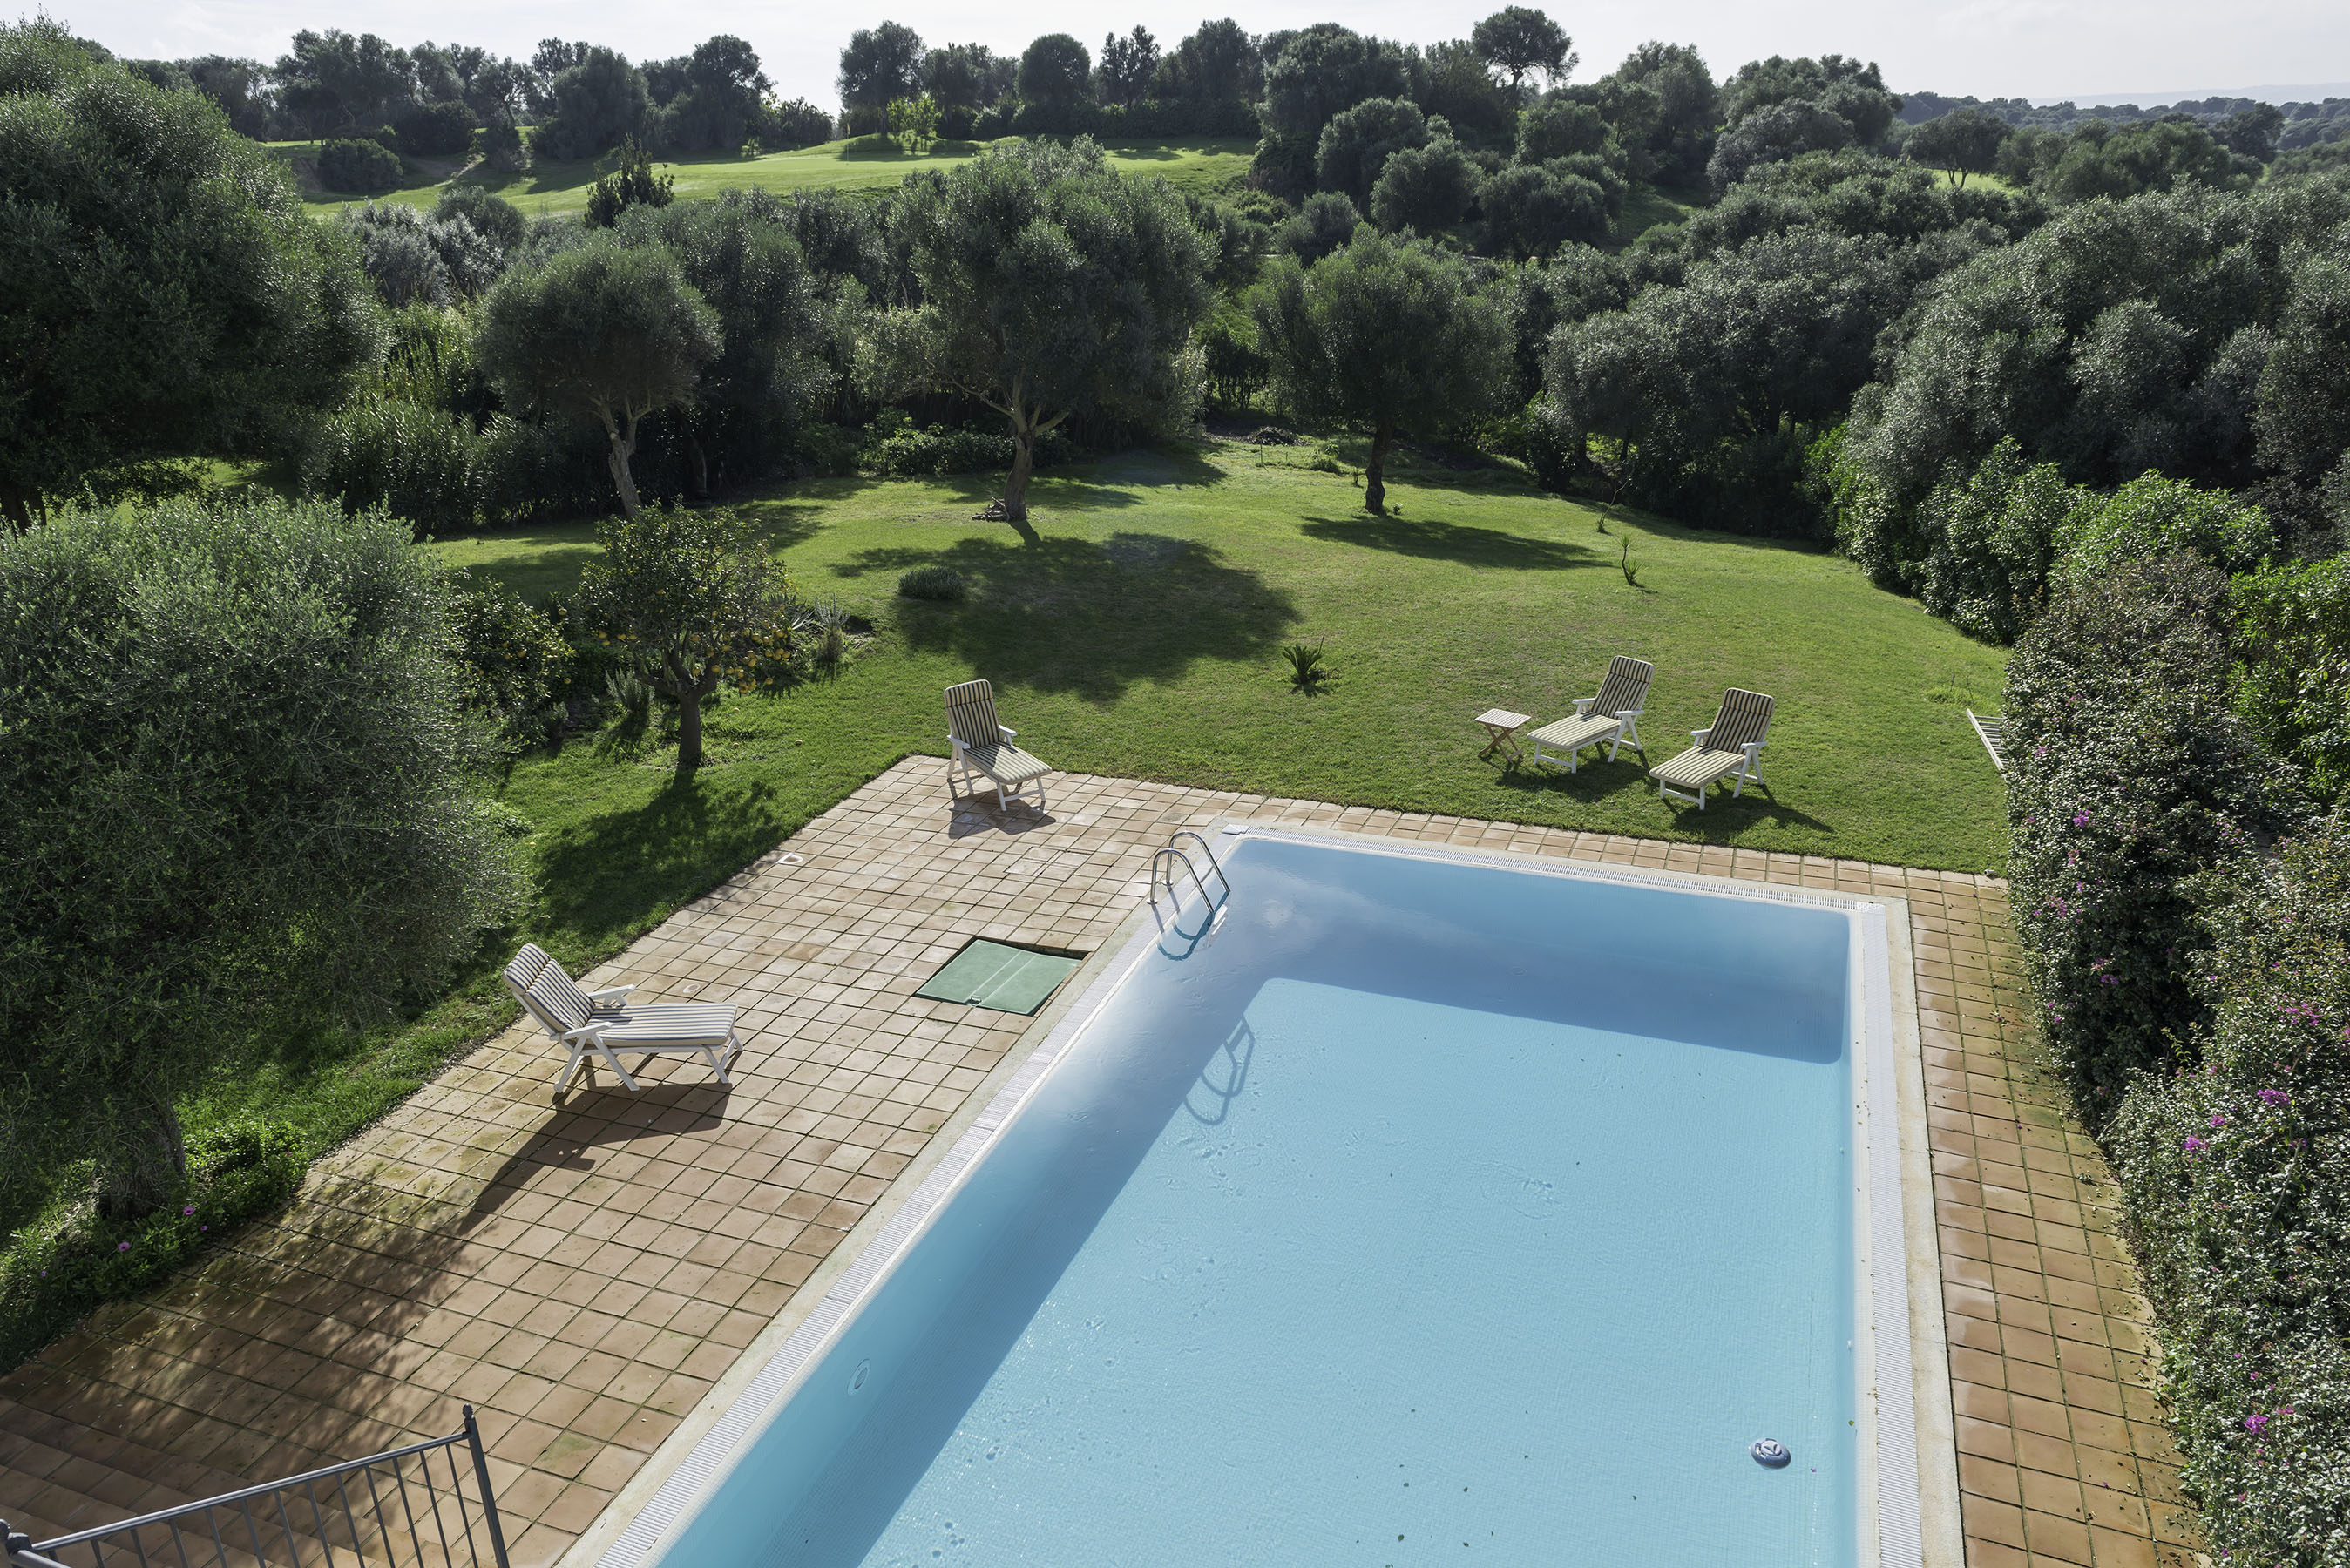 Villa Capuchina pool and garden with adjoining golf course